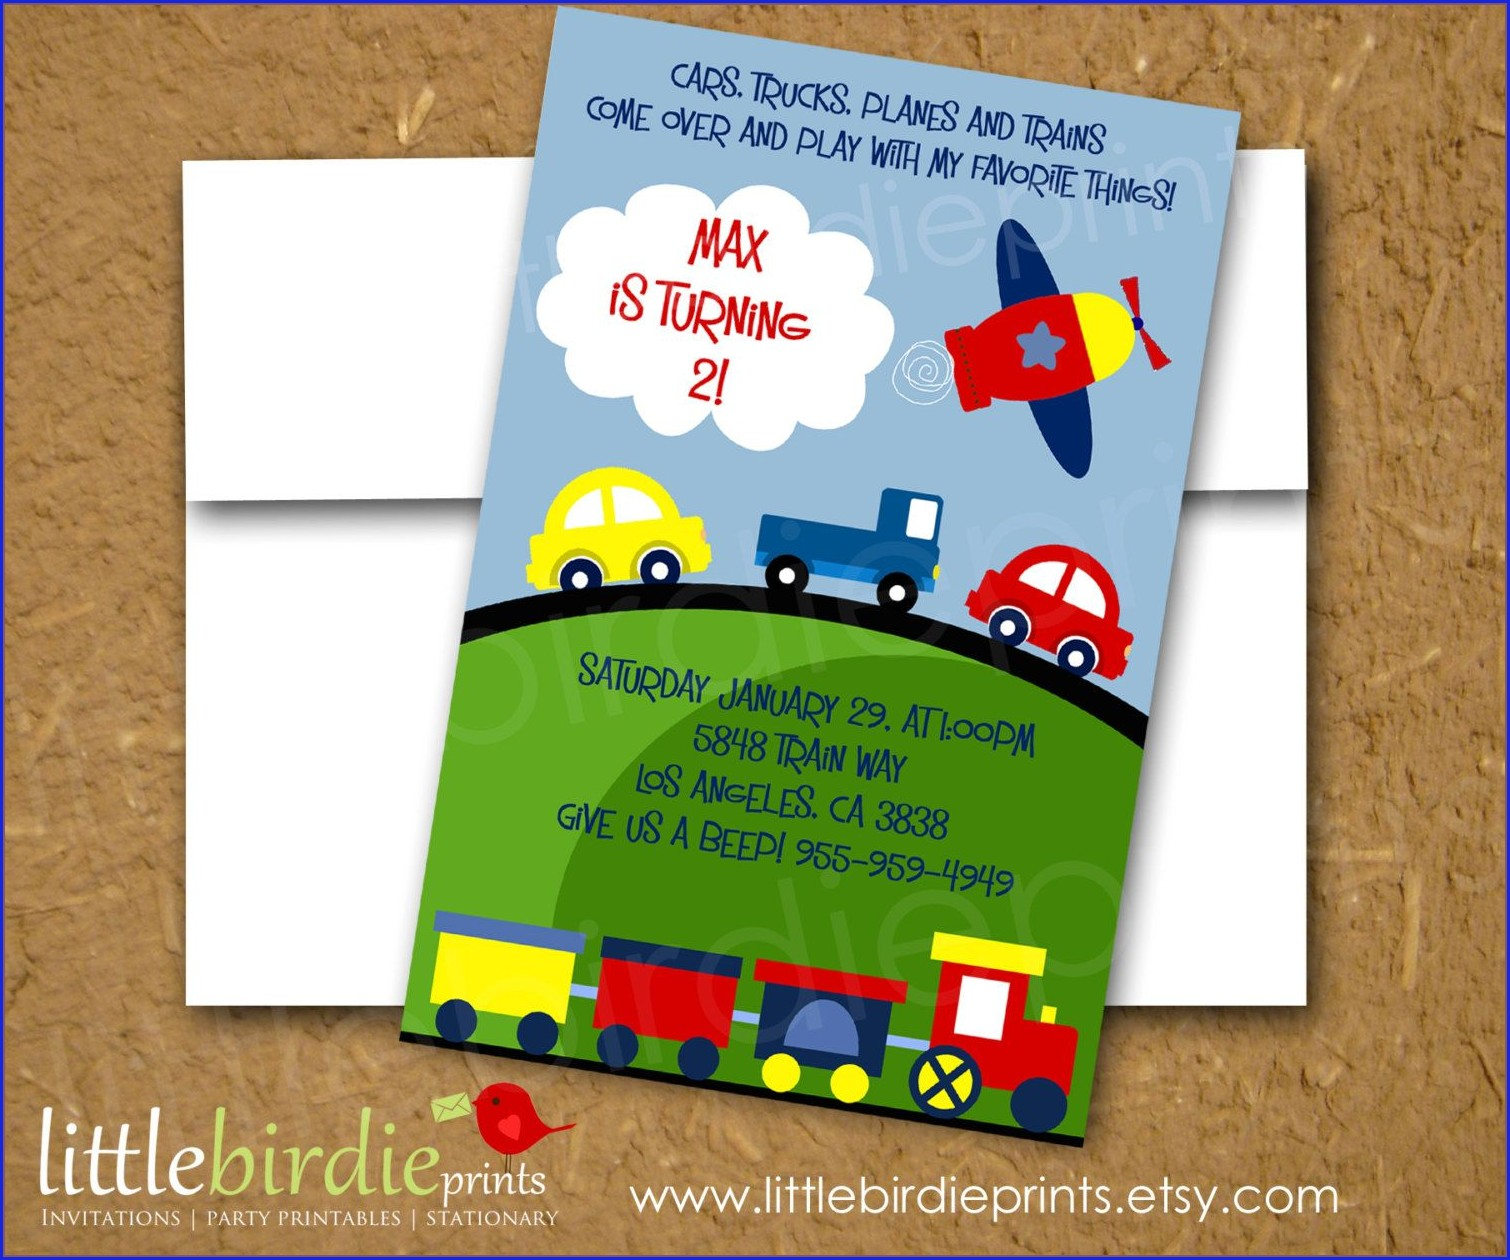 Planes Trains And Automobiles Invitation For Birthday